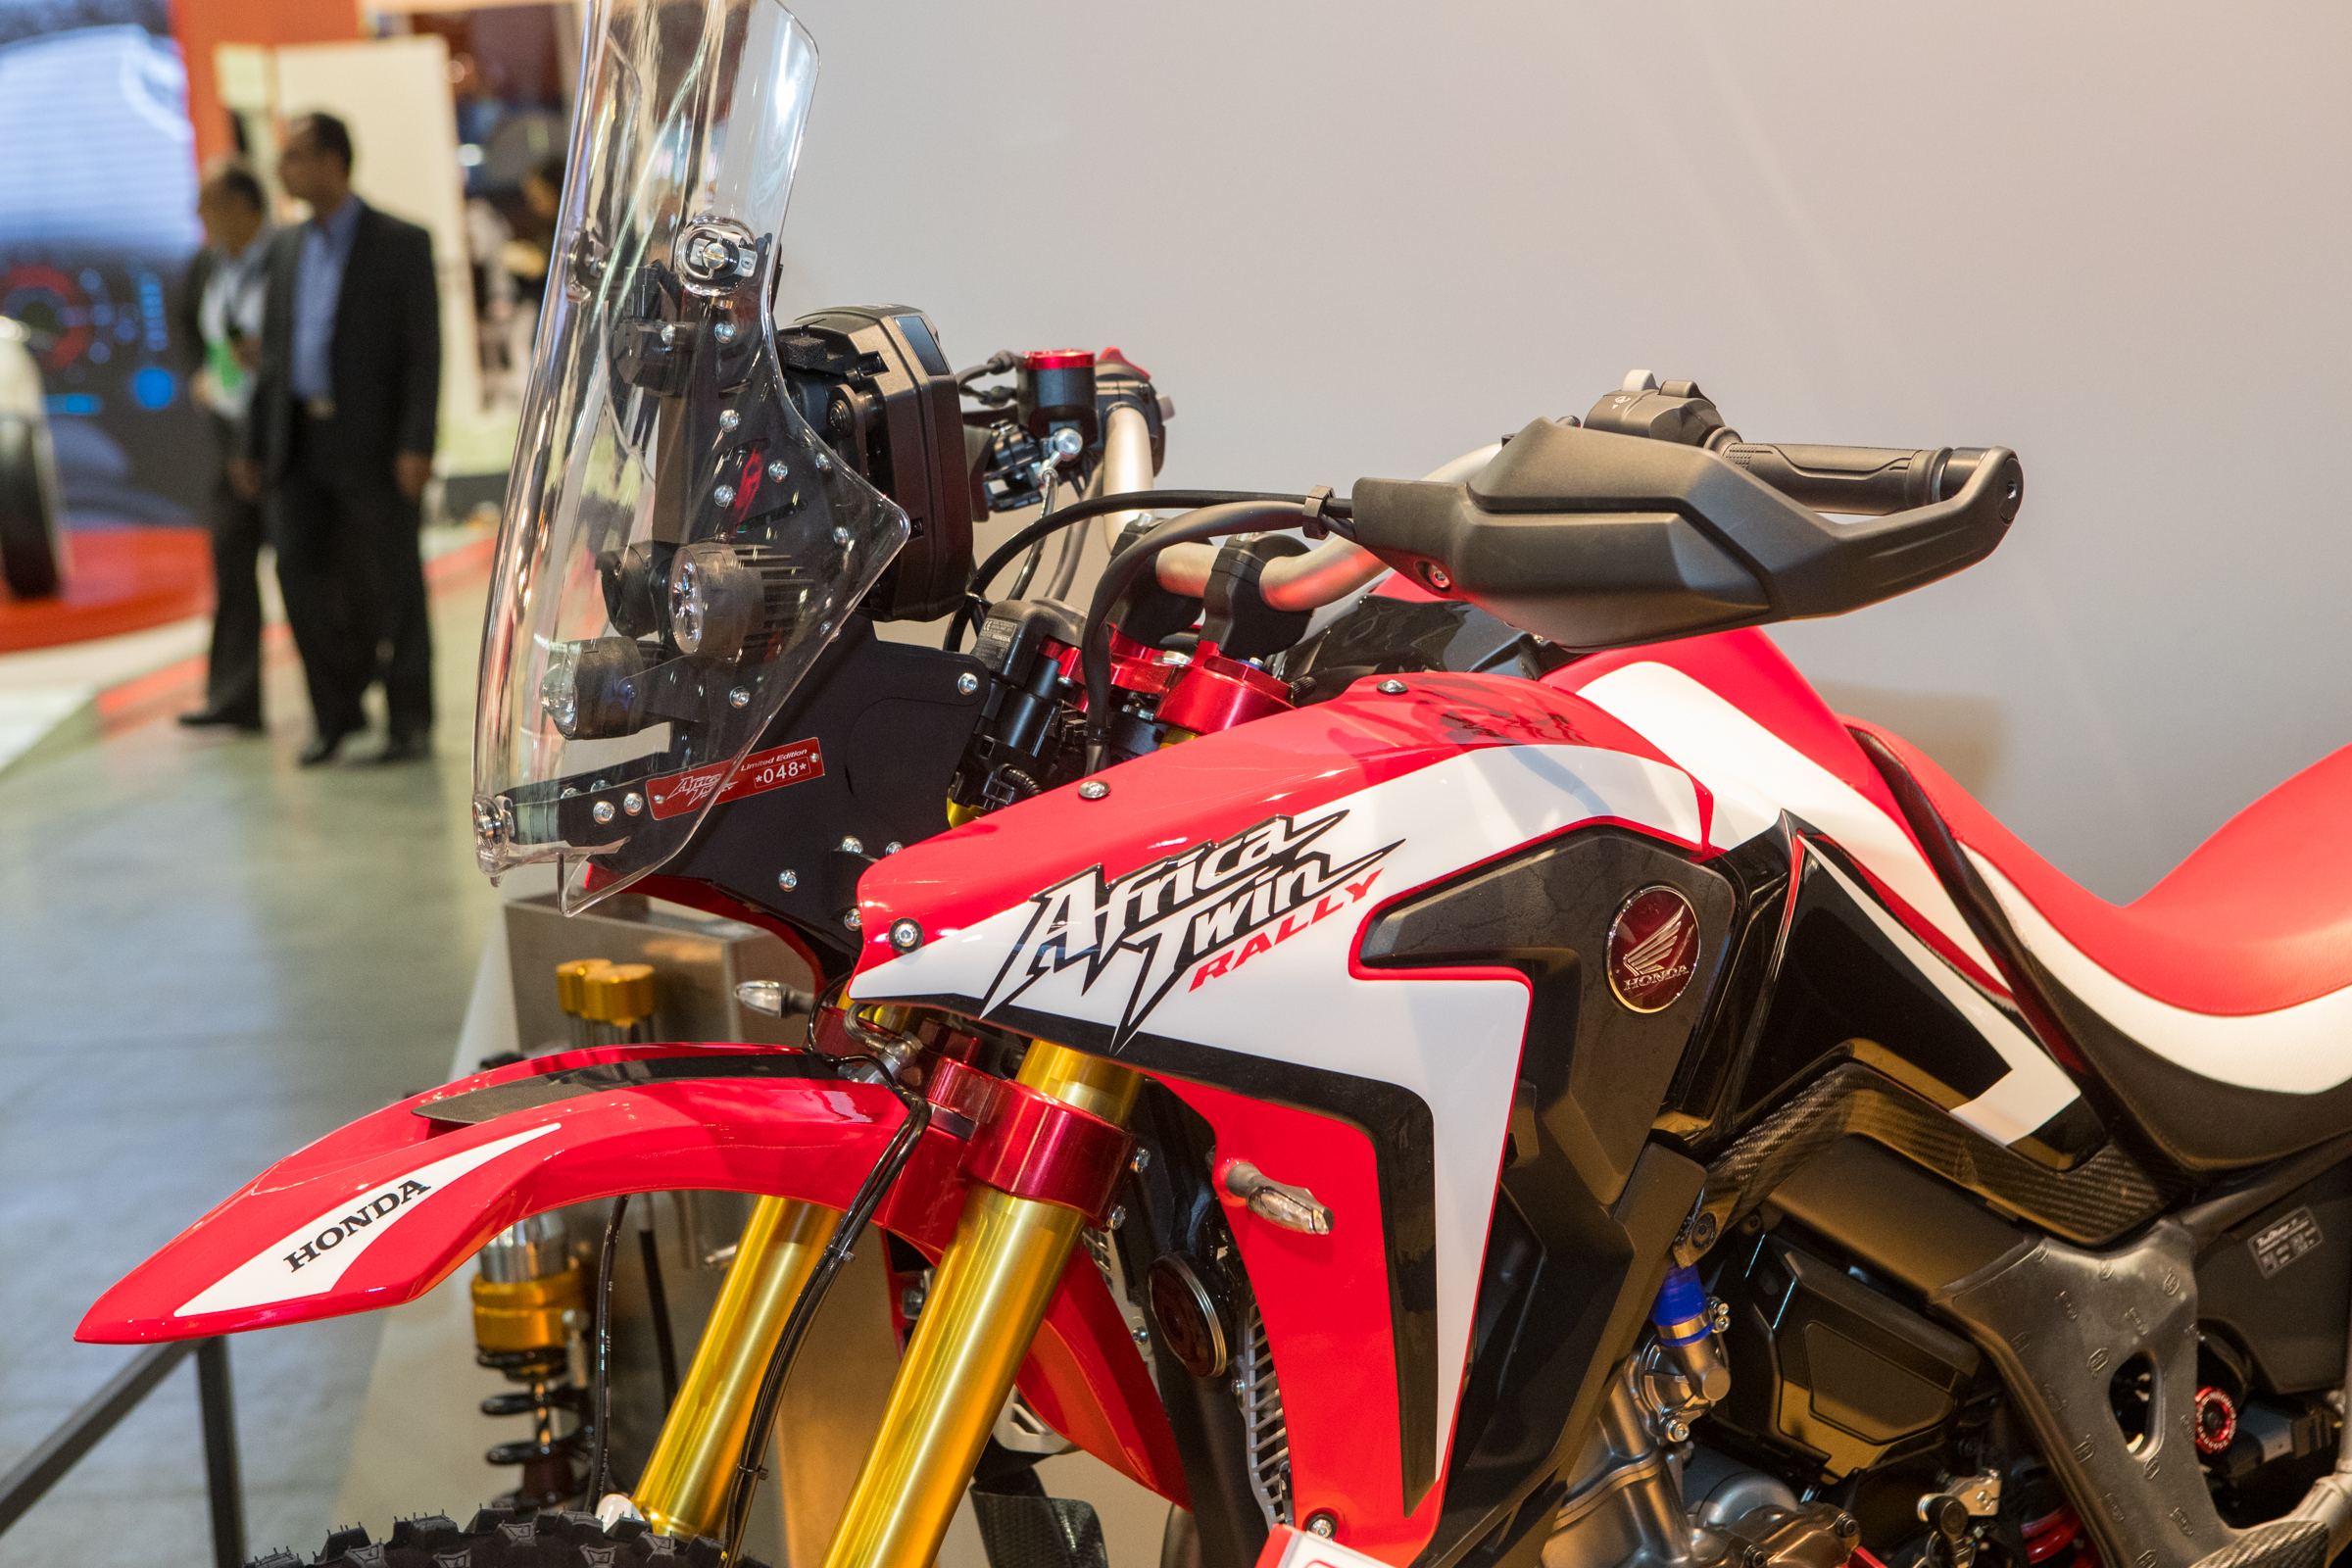 This Africa Twin Rally features all new shrouds, a Dakar inspired windshield and info area, new forks and more.